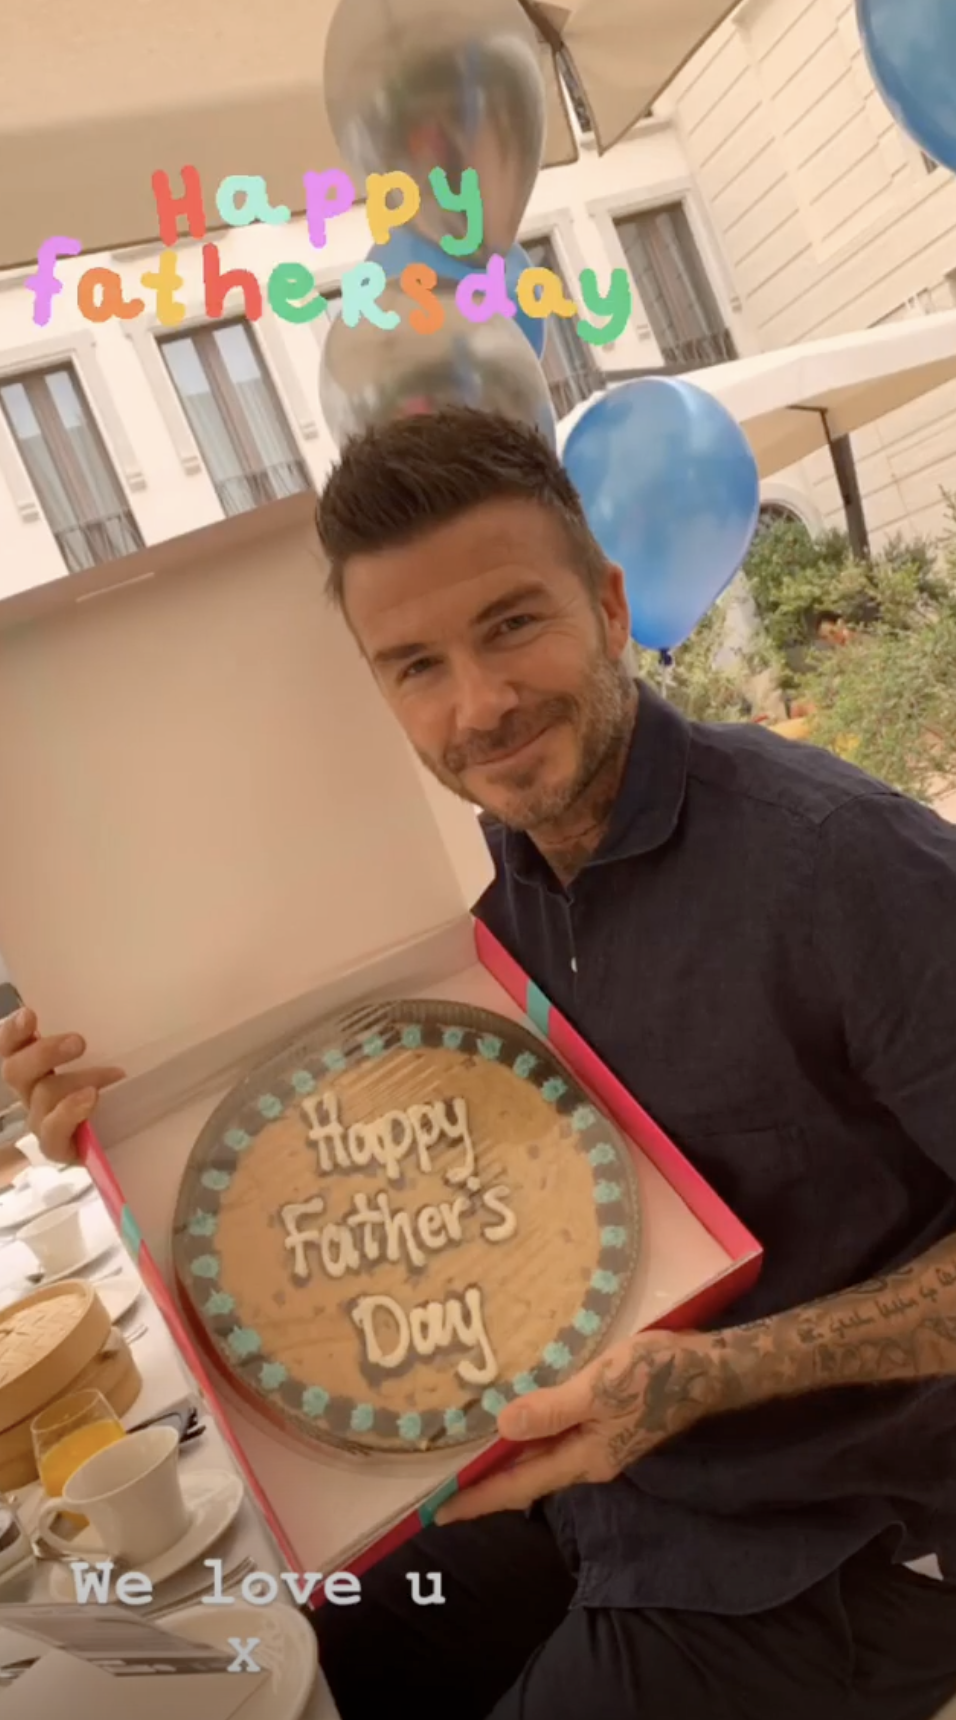 Victoria Beckham posted this photo of husband David Beckham holding up a Father's Day 2019 cookie cake on her Instagram Story on June 16, 2019.